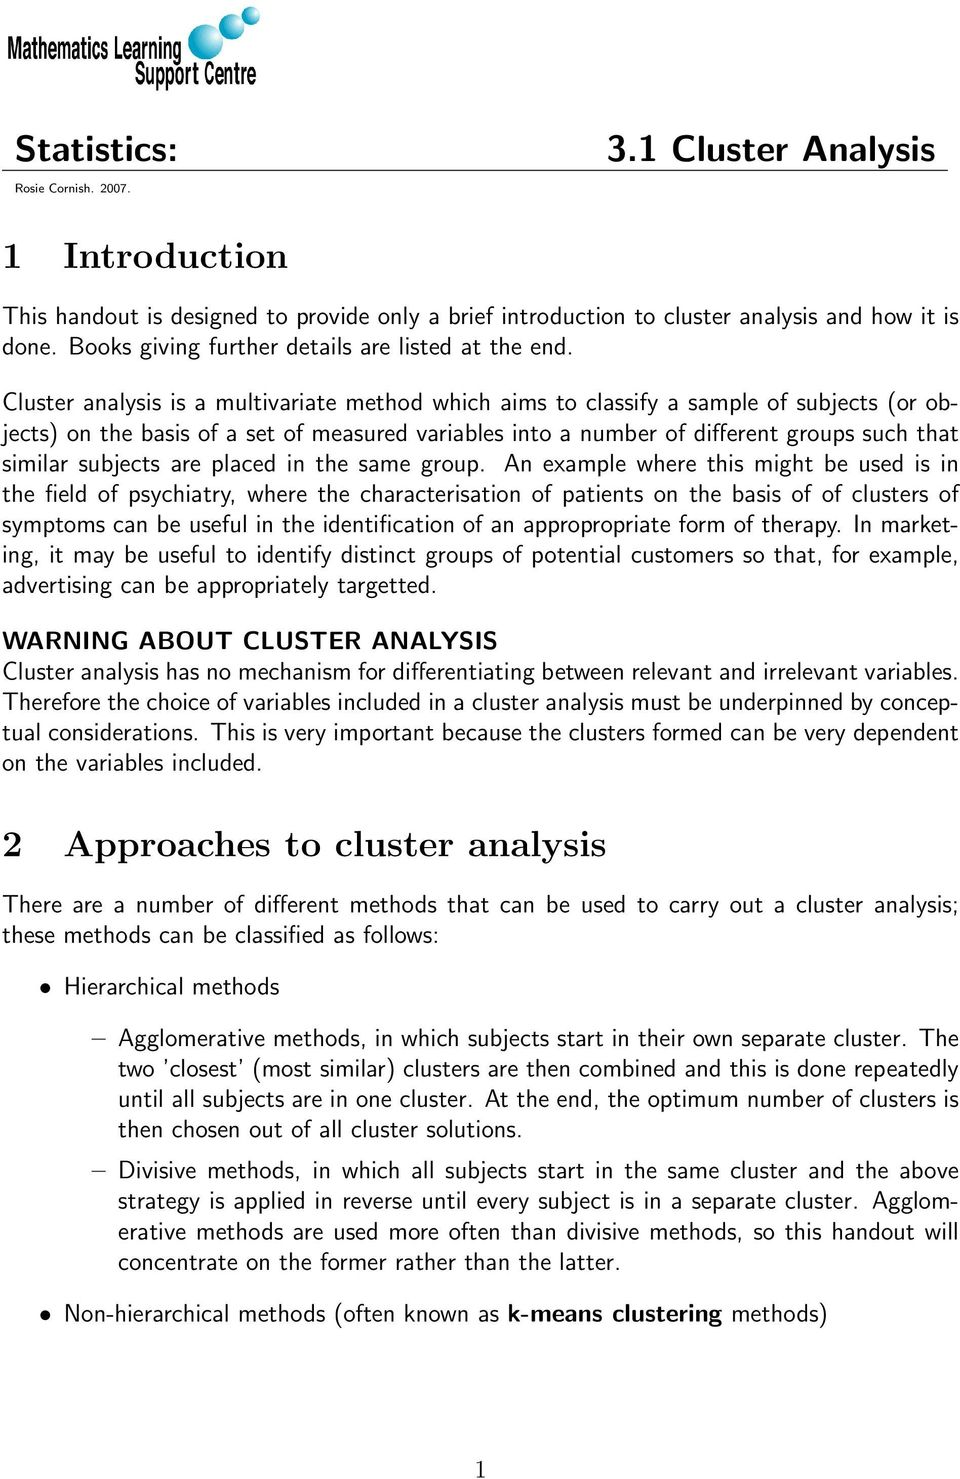 Cluster analysis is a multivariate method which aims to classify a sample of subjects (or objects) on the basis of a set of measured variables into a number of different groups such that similar